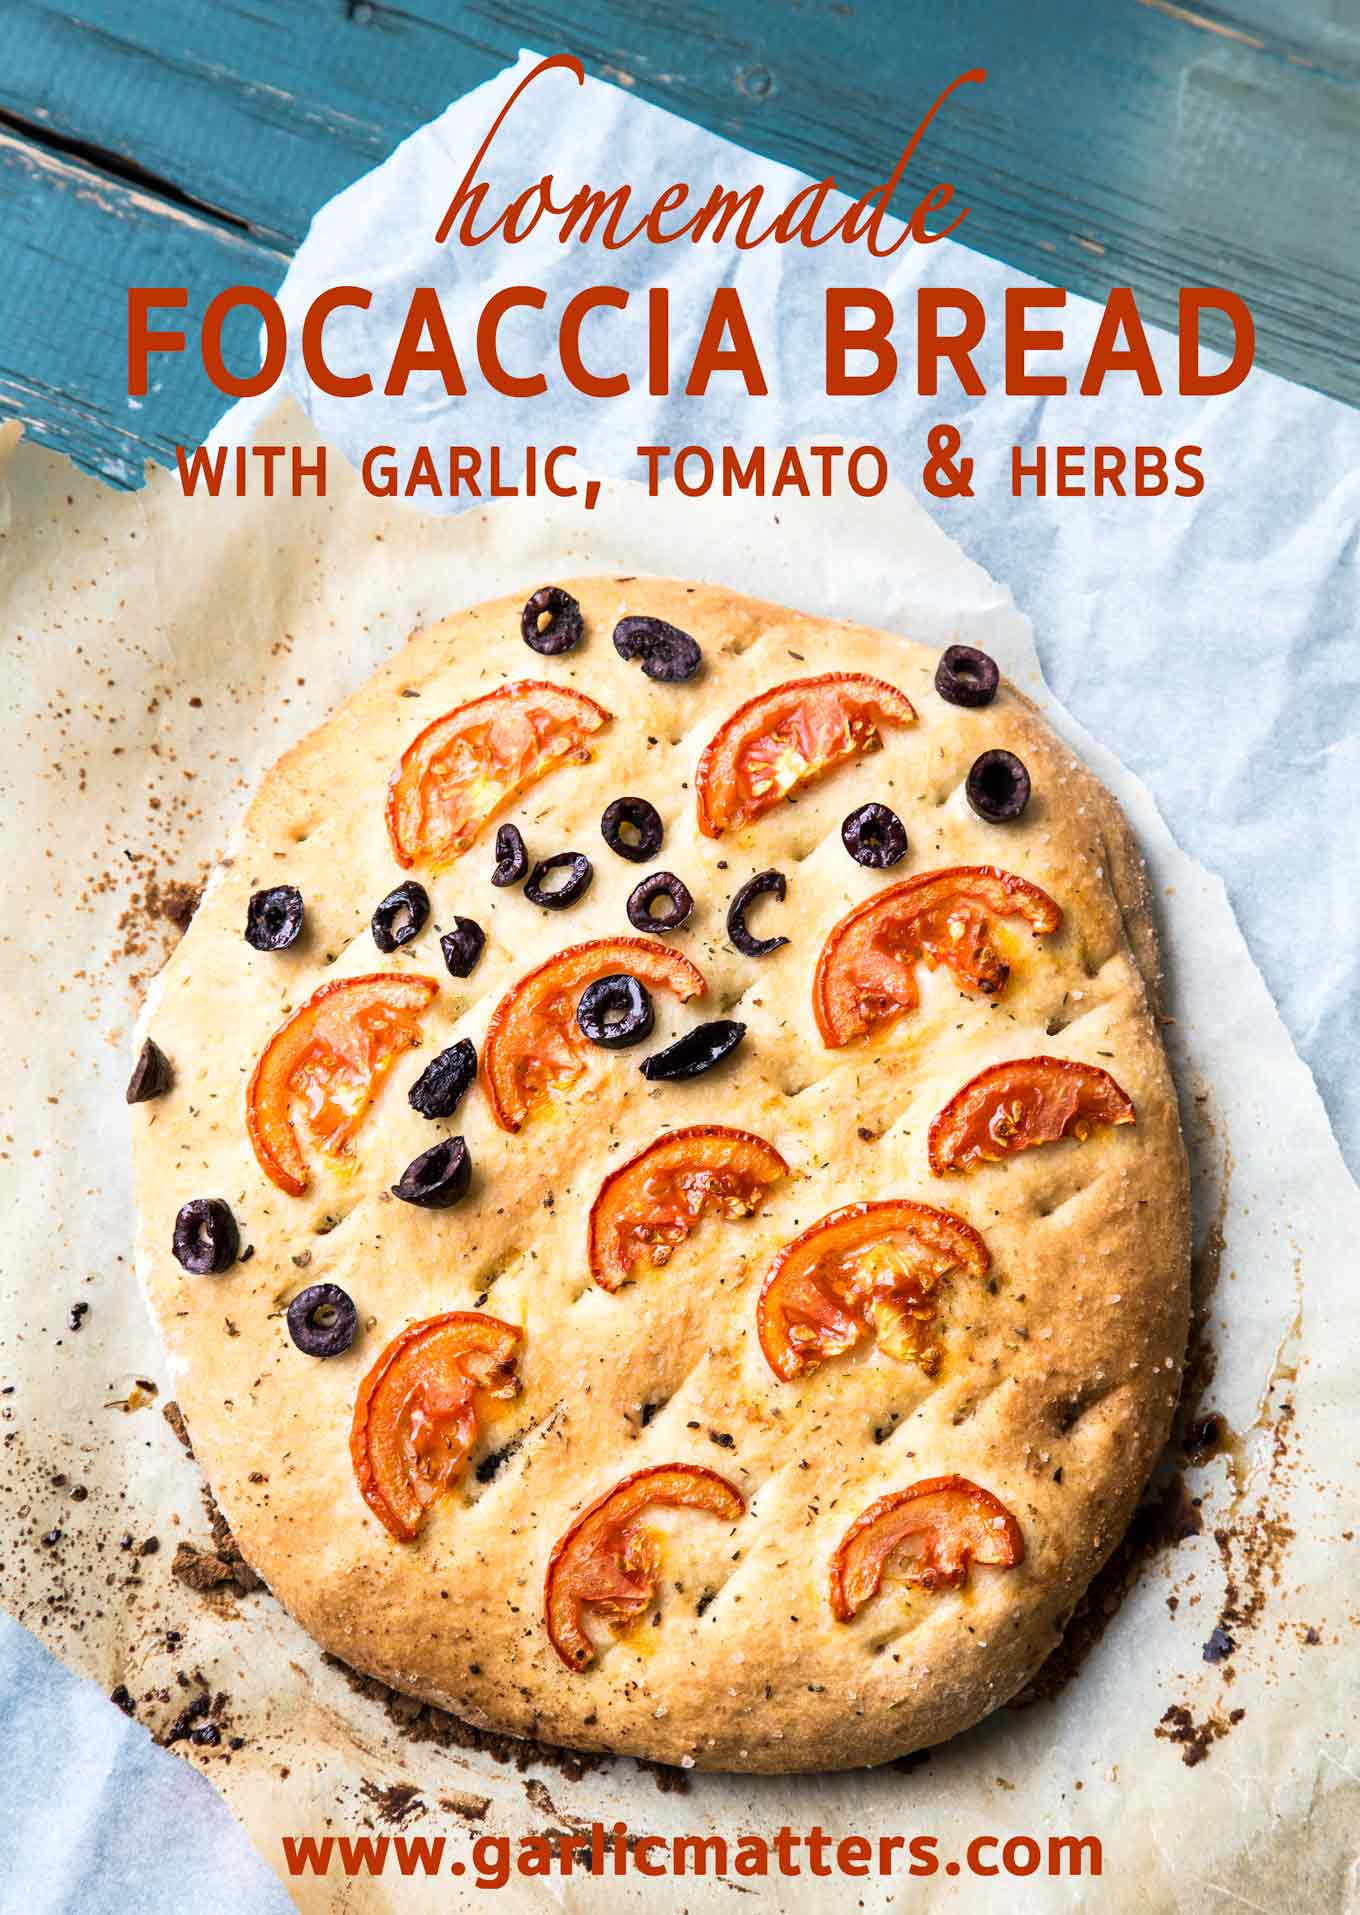 Easy Focaccia Bread with Garlic, Tomato and Herbs, also works great as a thicker pizza base recipe. Delicious eaten warm, loves being dipped.